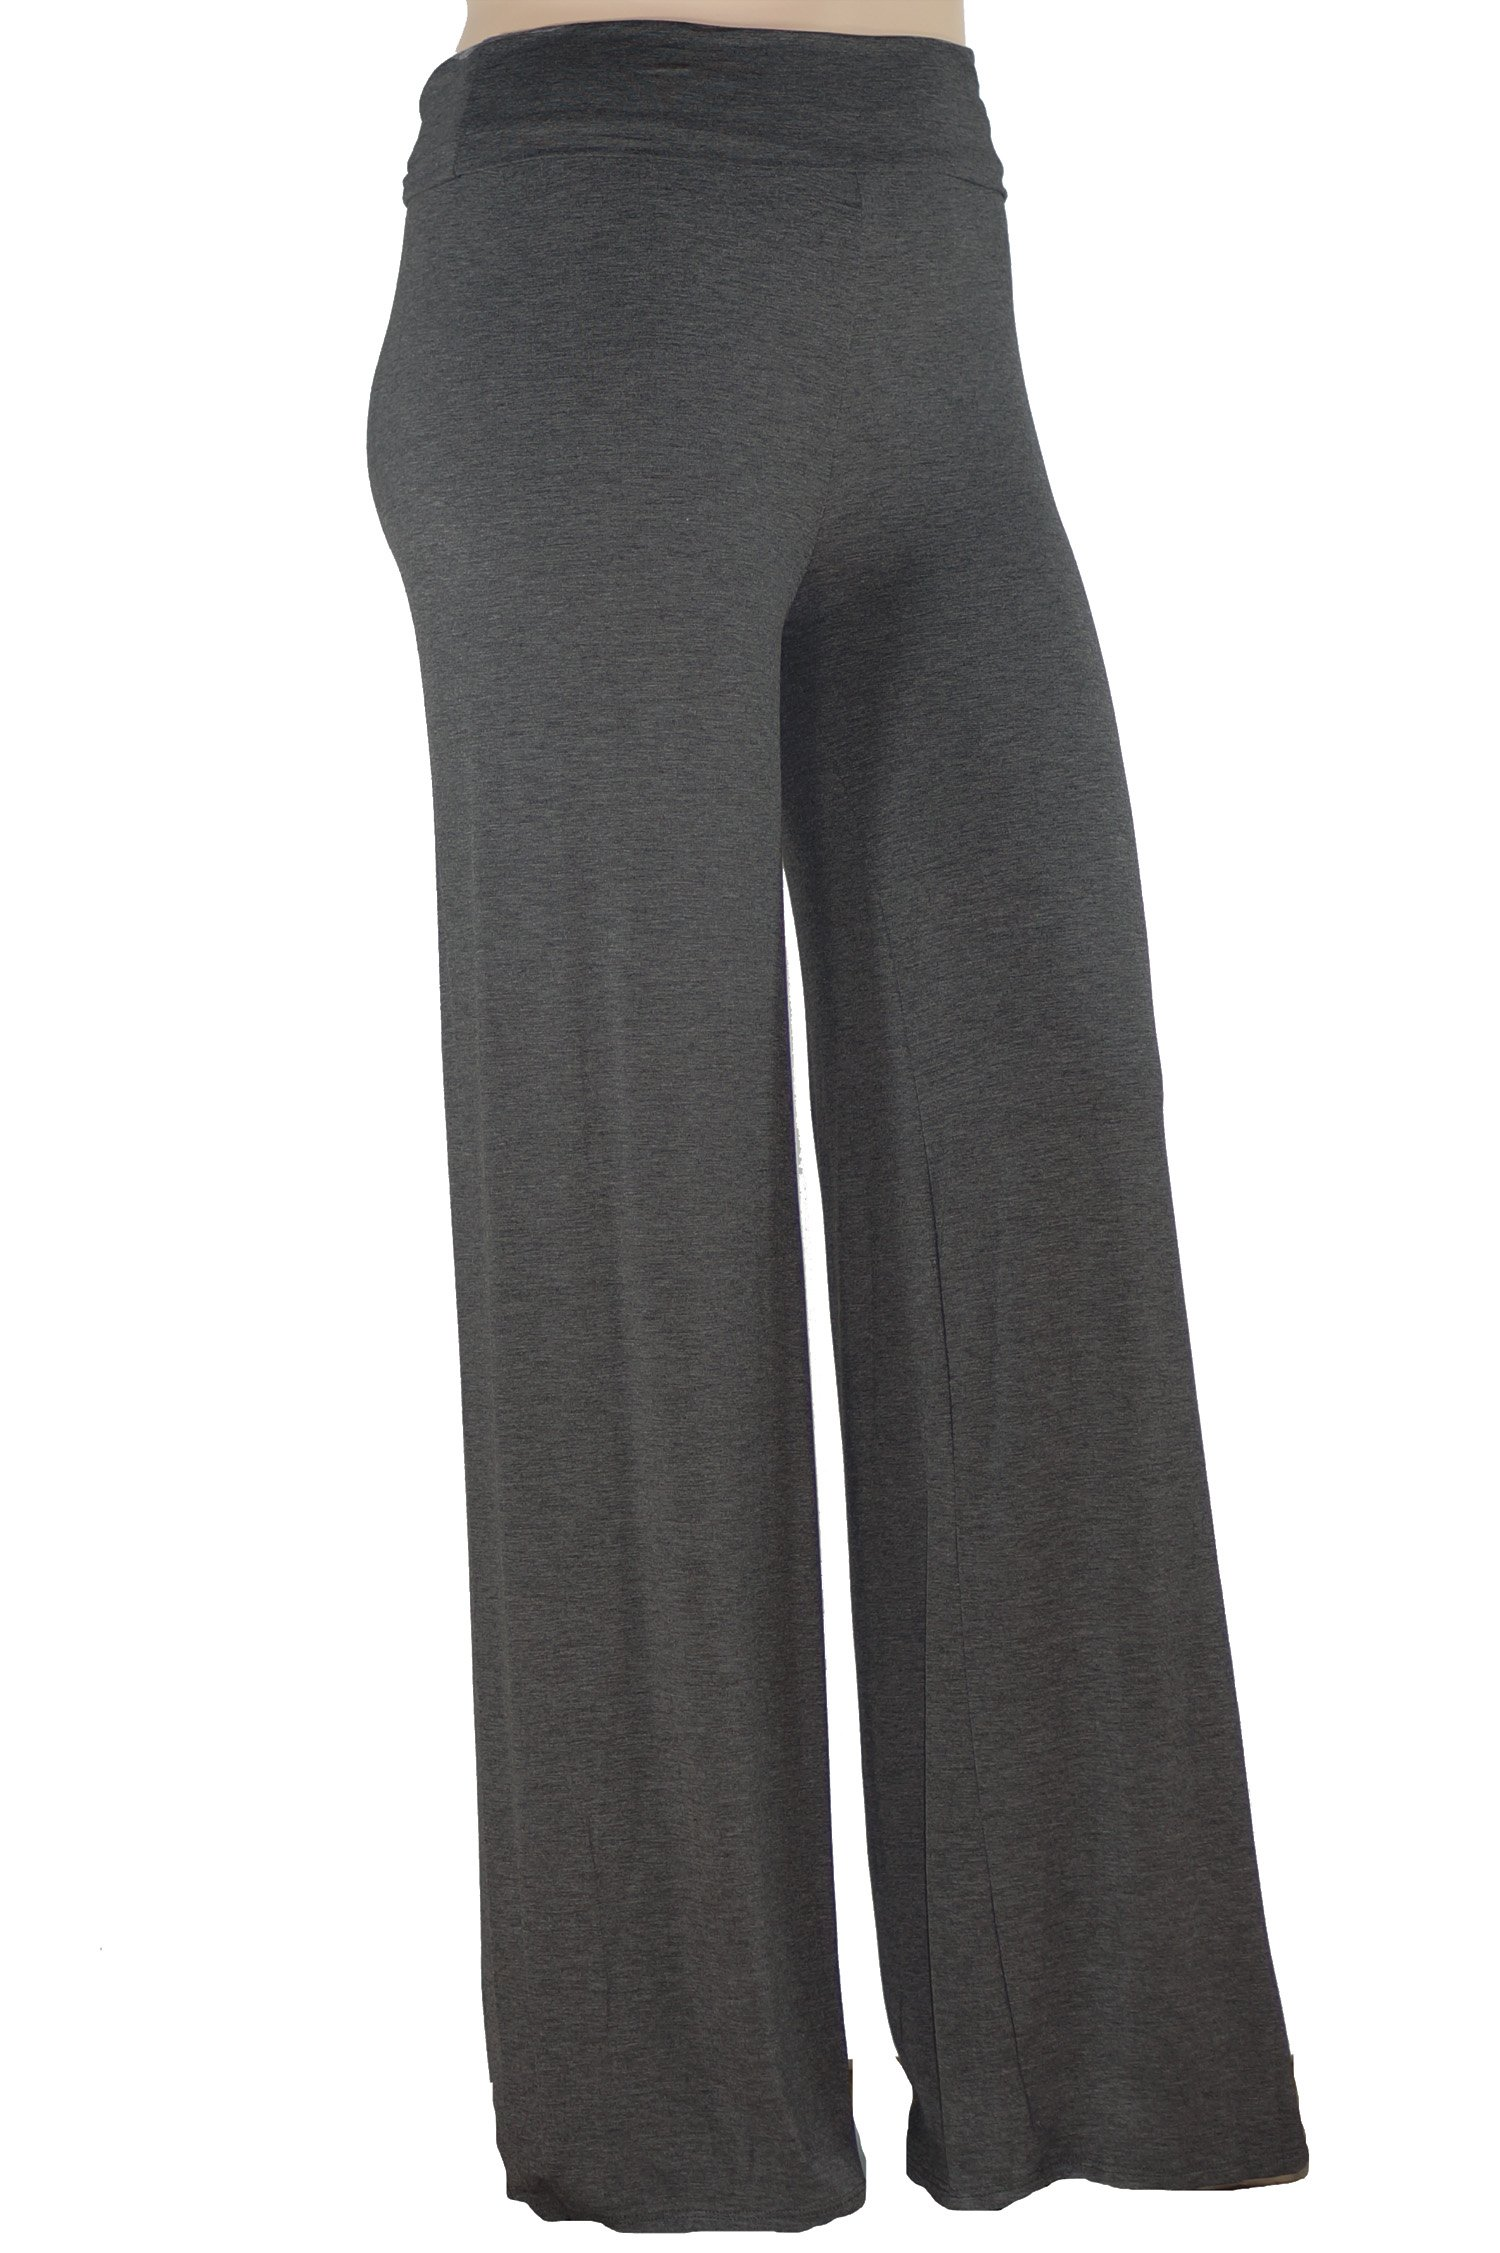 Stylzoo Women's Plus Size Stretchy Comfy Palazzo Solid Color Pants Grey 29 Inseam 2X